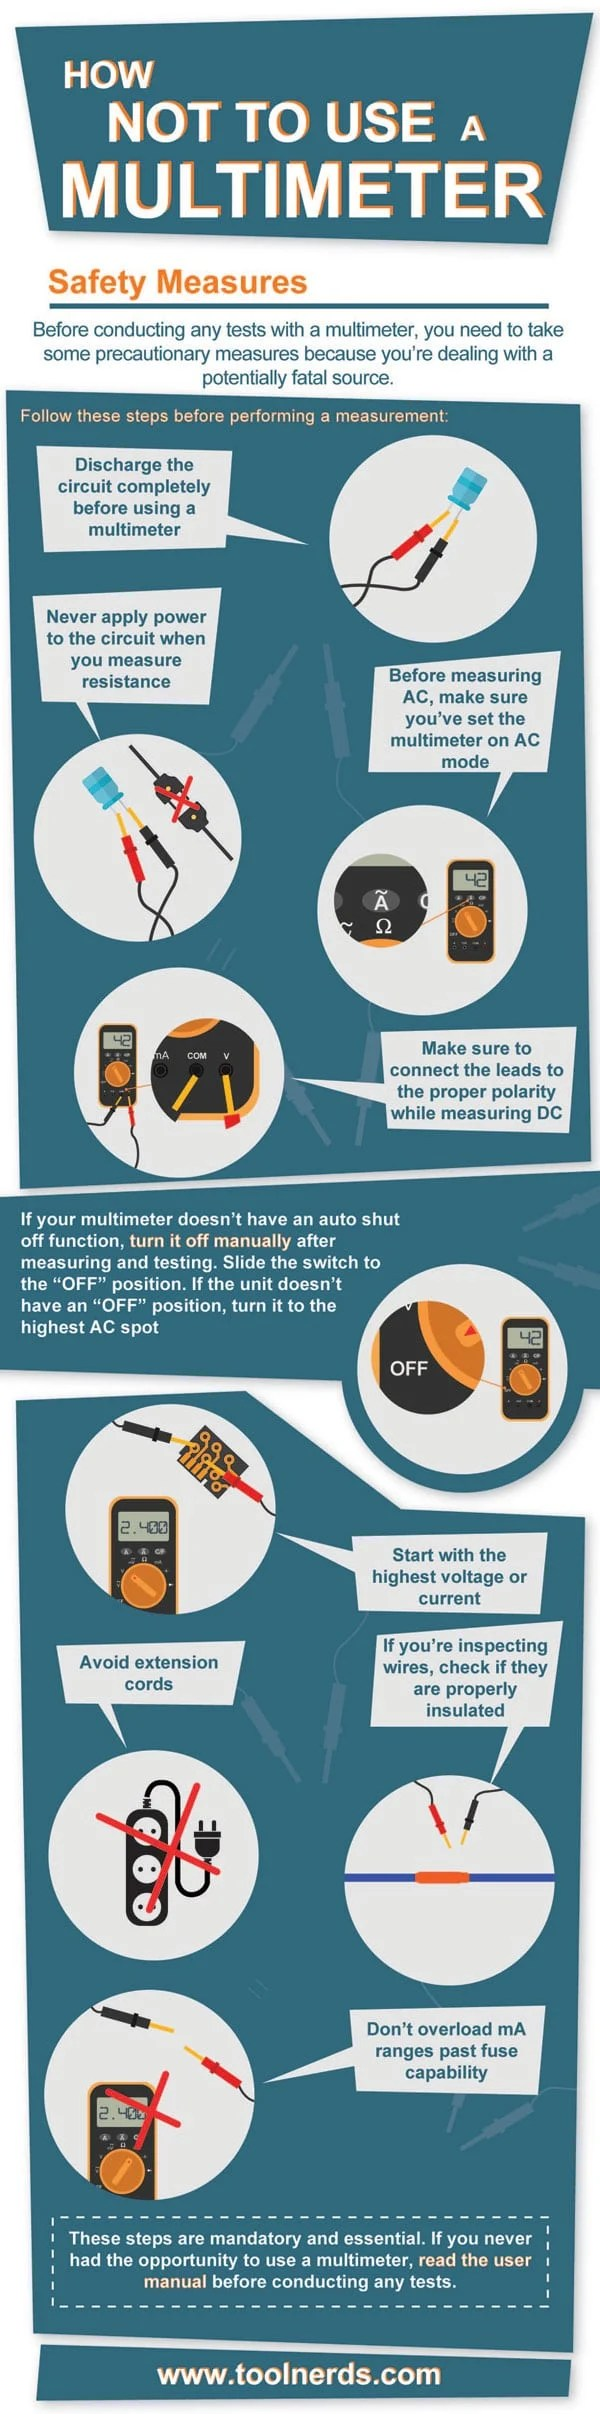 Multimeter safety measures infographic